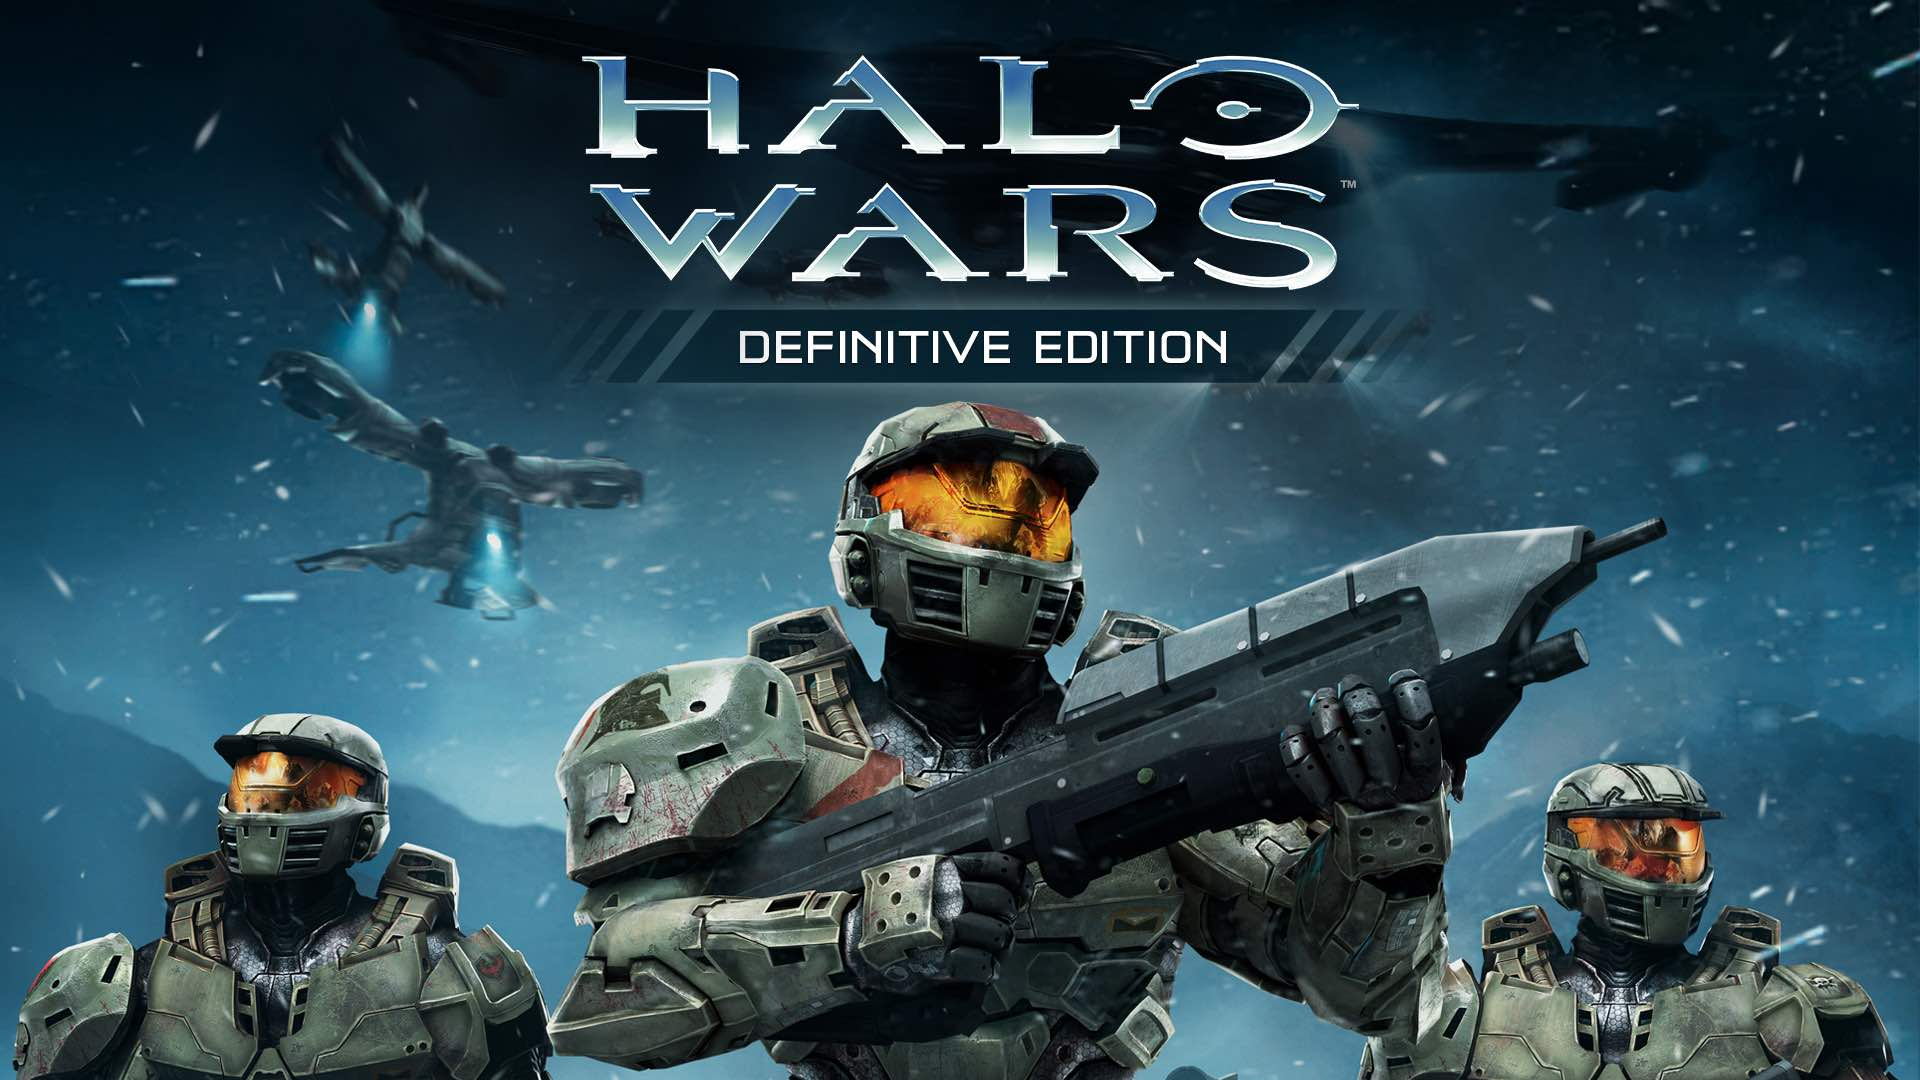 Halo Wars: Definitive Edition release date in SteamGame